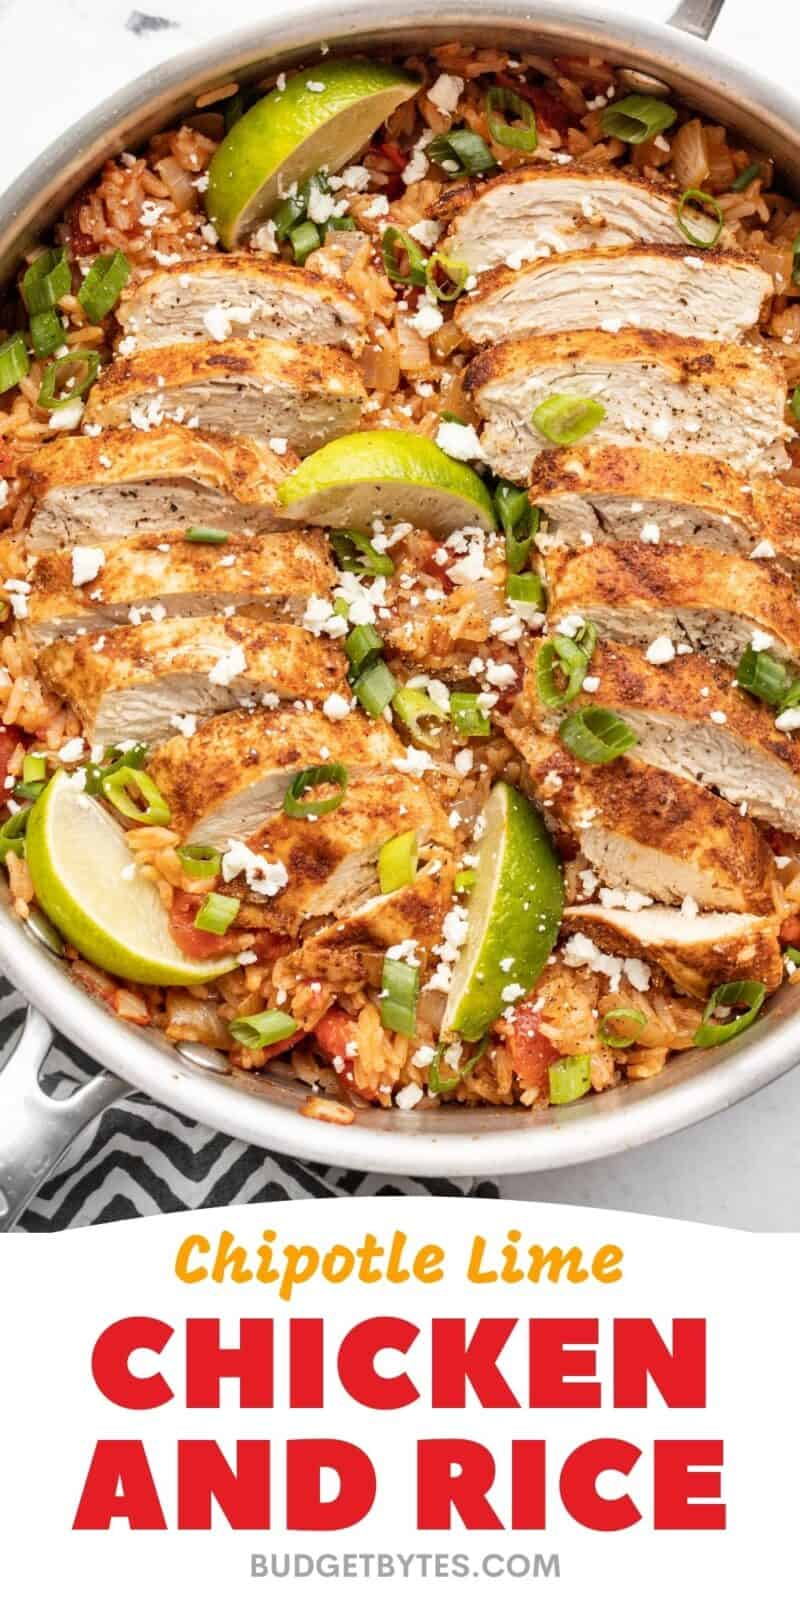 Chipotle Lime Chicken and Rice PIN4